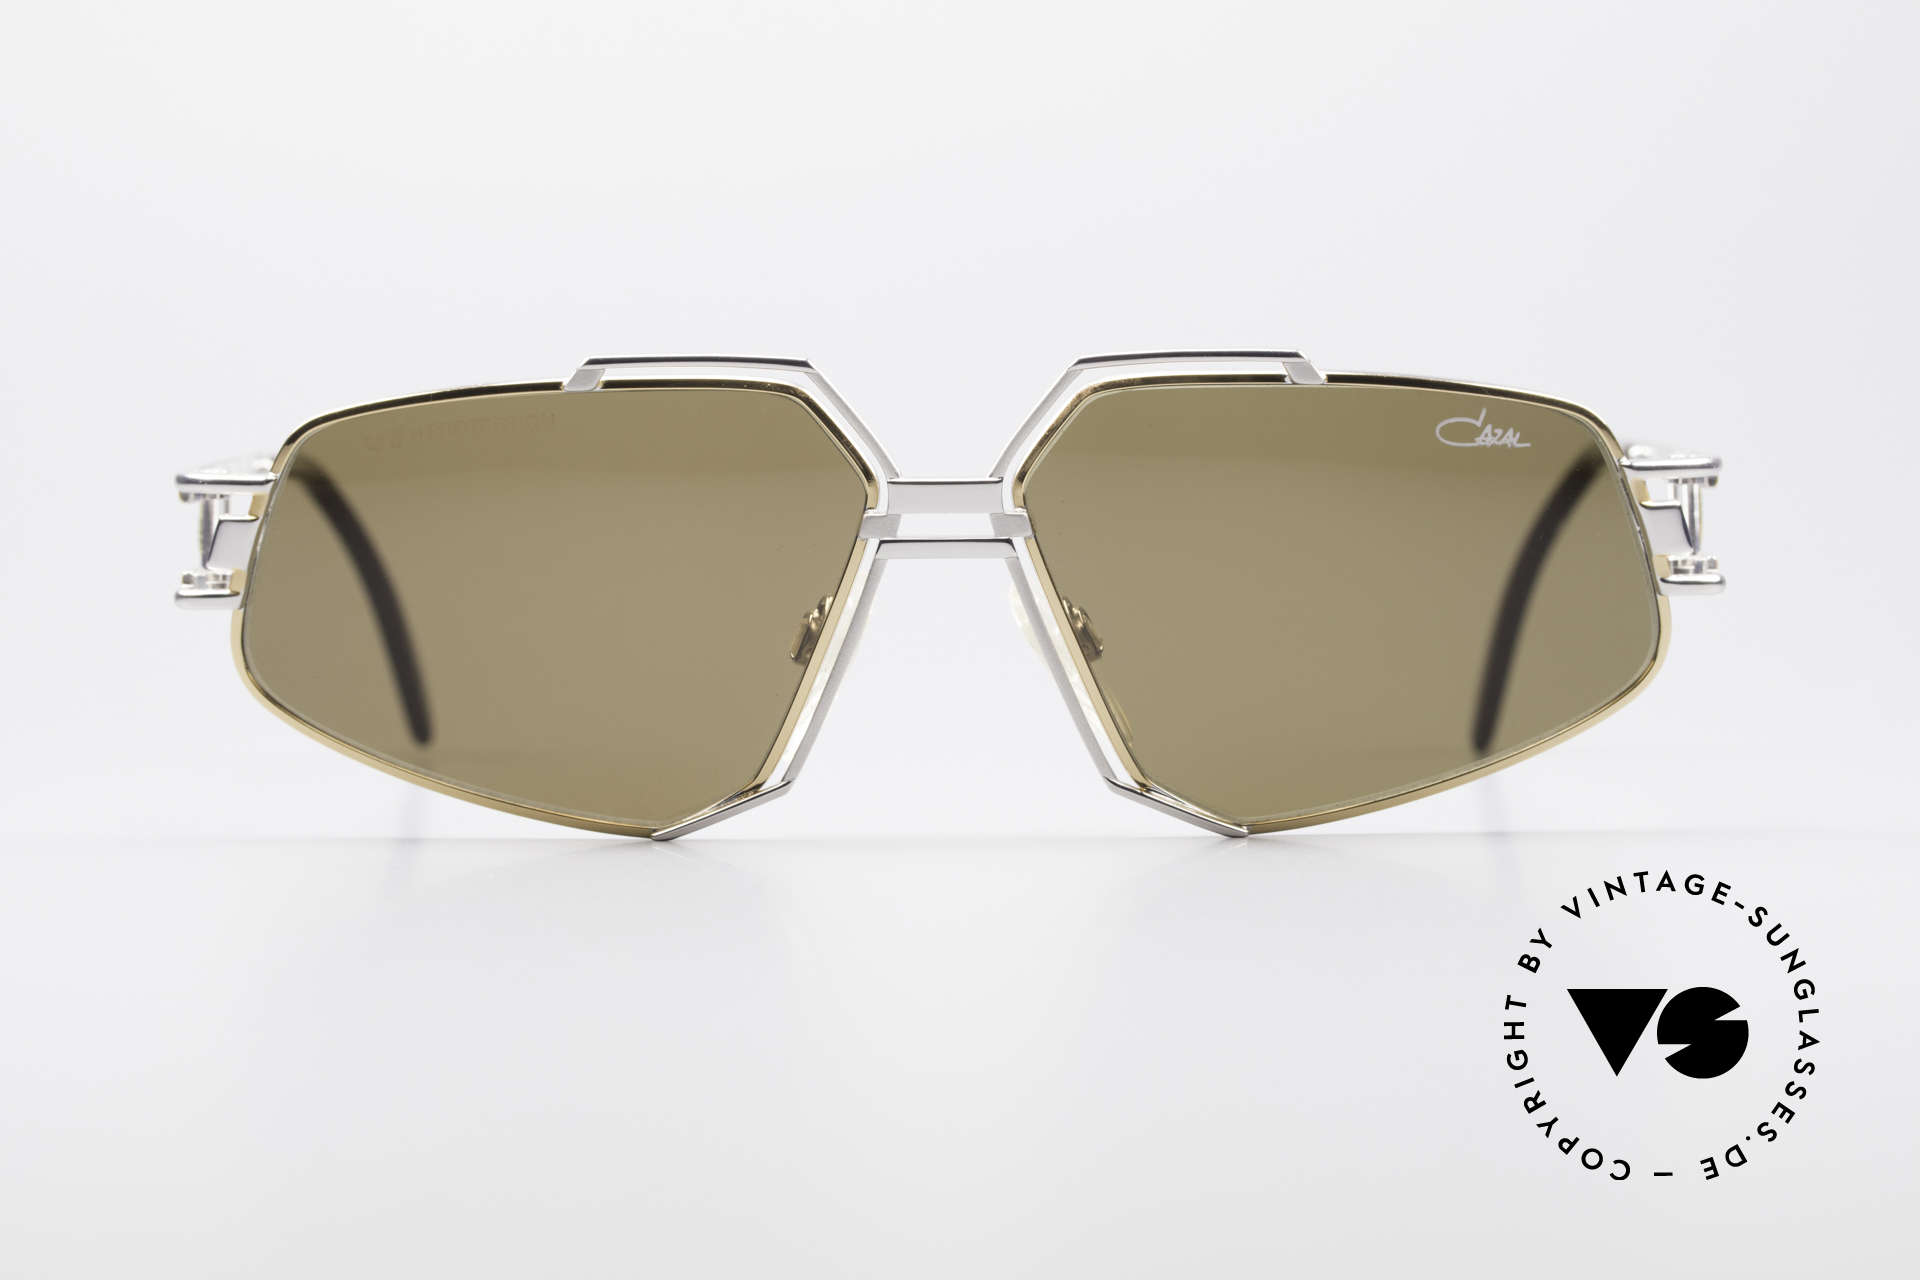 Cazal 961 Rare Designer Sunglasses 90s, terrific design by CAri ZALloni (CAZAL chief designer), Made for Men and Women